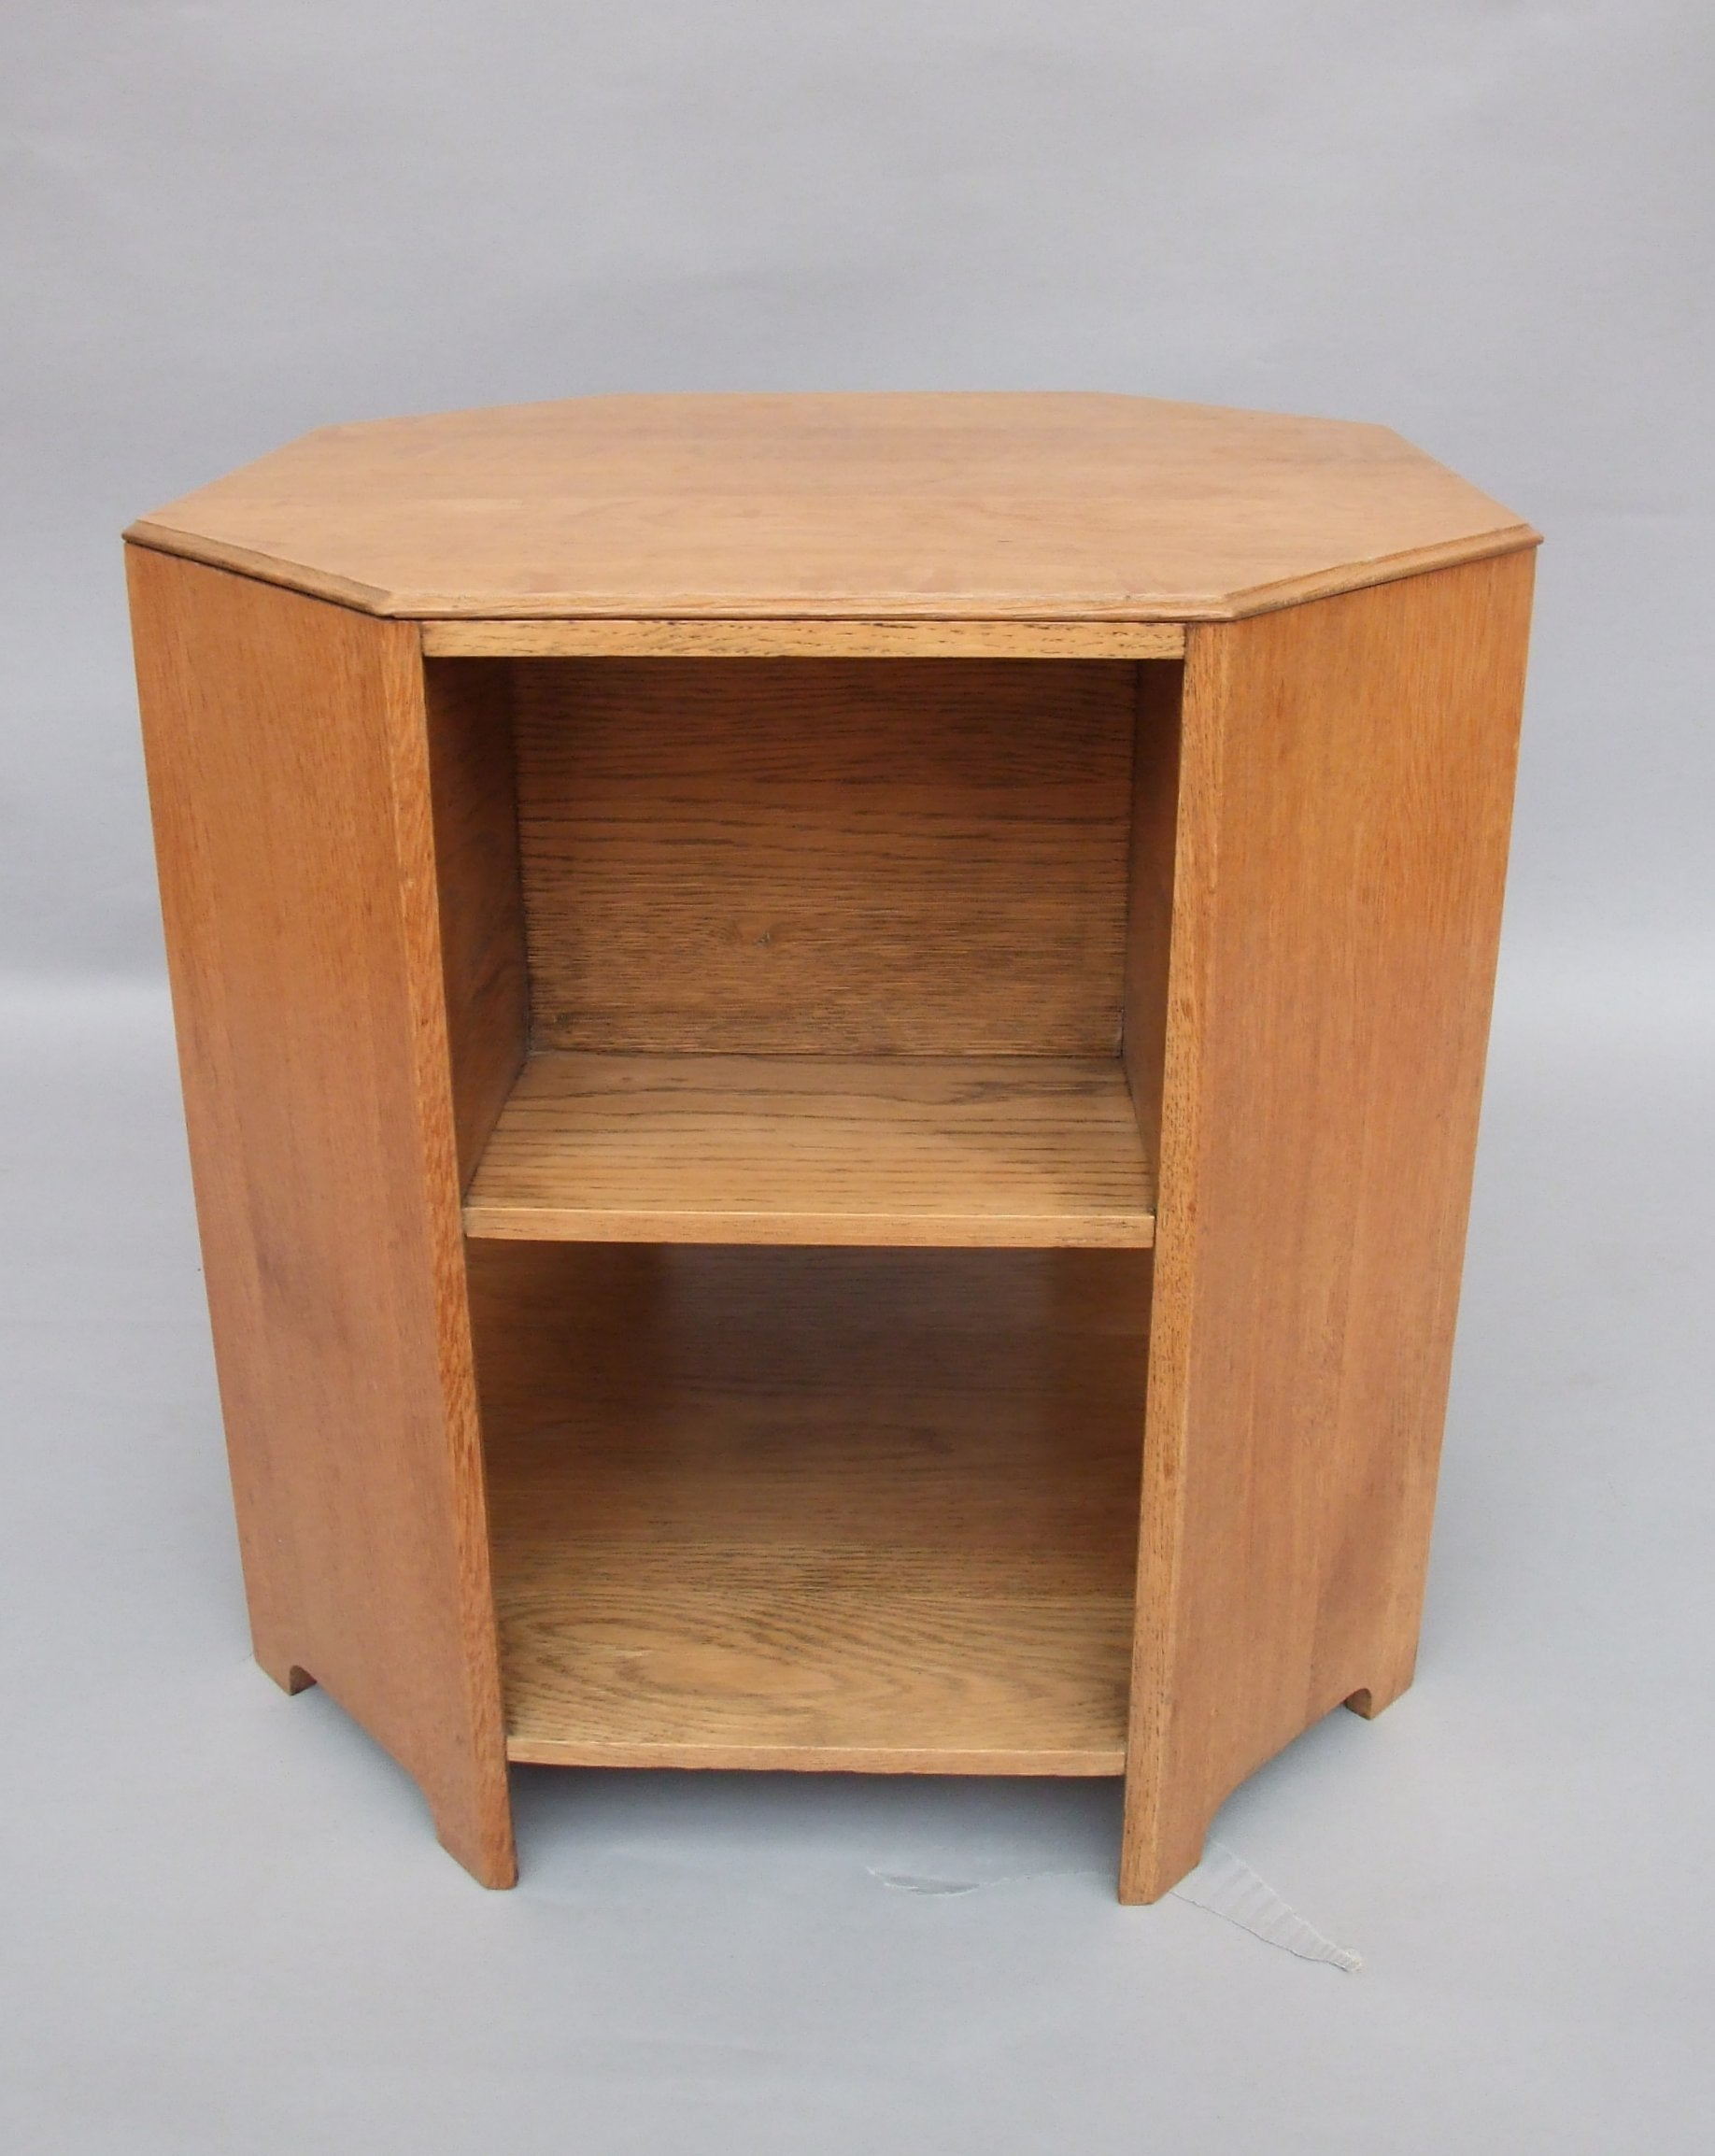 Oak Arts Crafts Coffee Table The Millinery Works